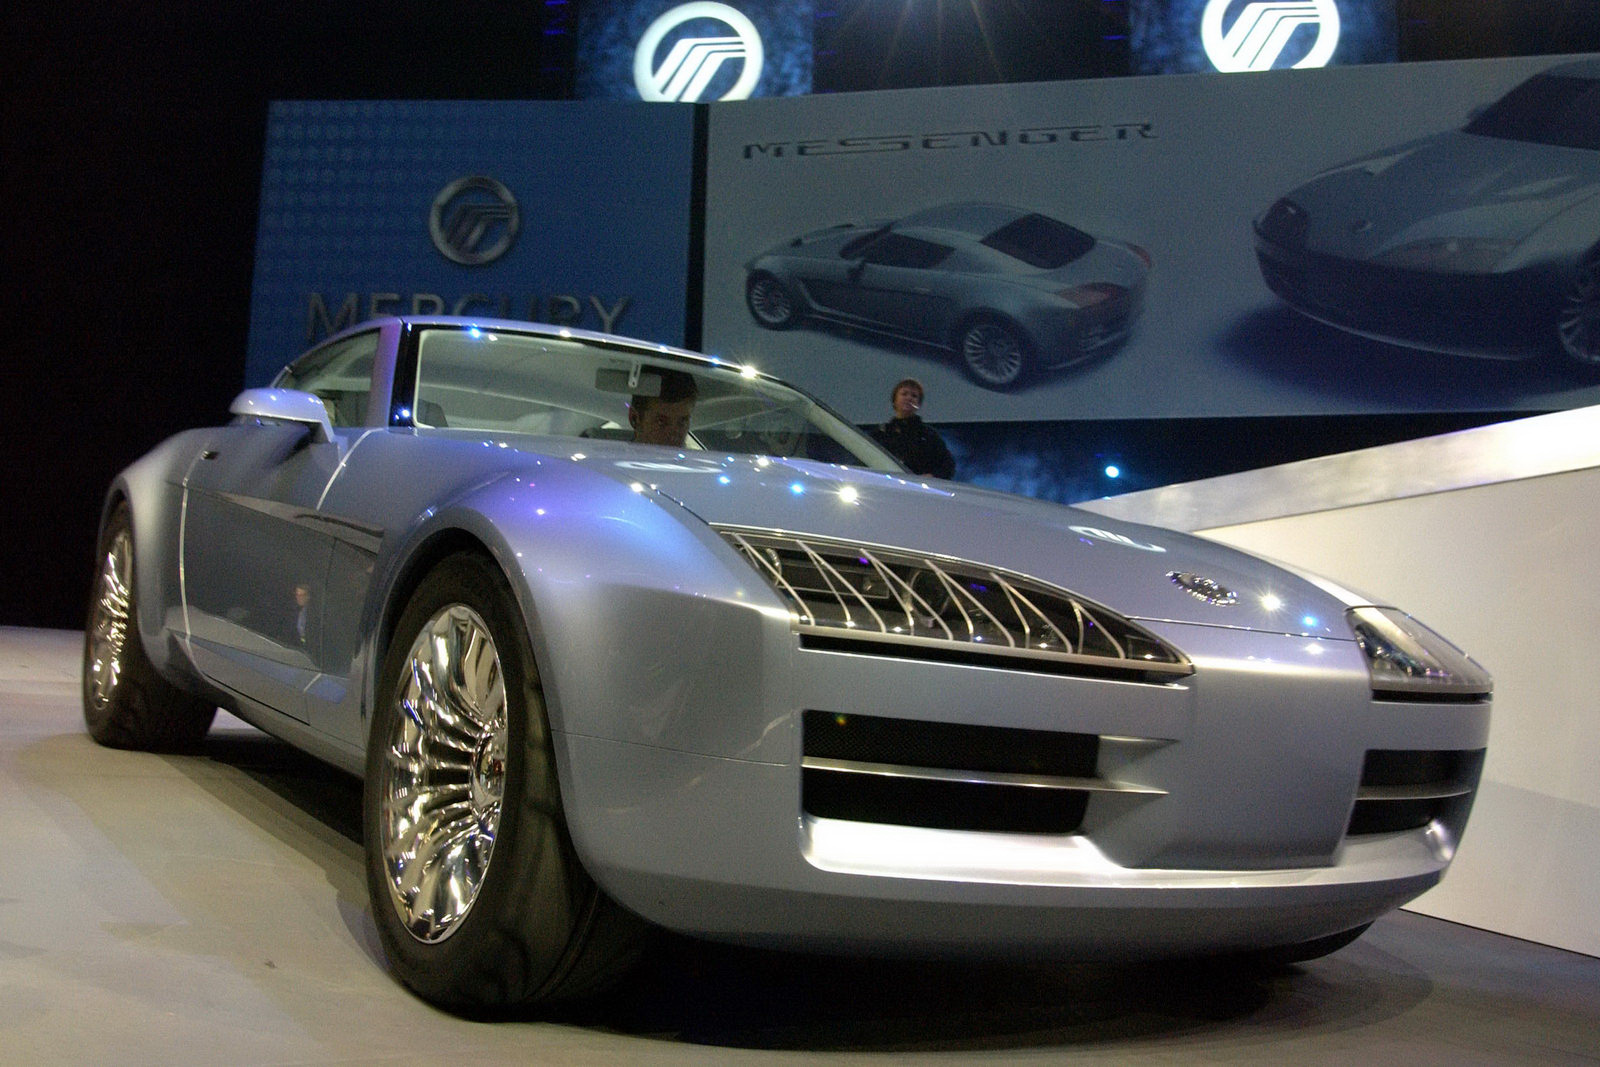 mercury 39 s 2003 messenger sports coupe concept also up for sale carscoops. Black Bedroom Furniture Sets. Home Design Ideas